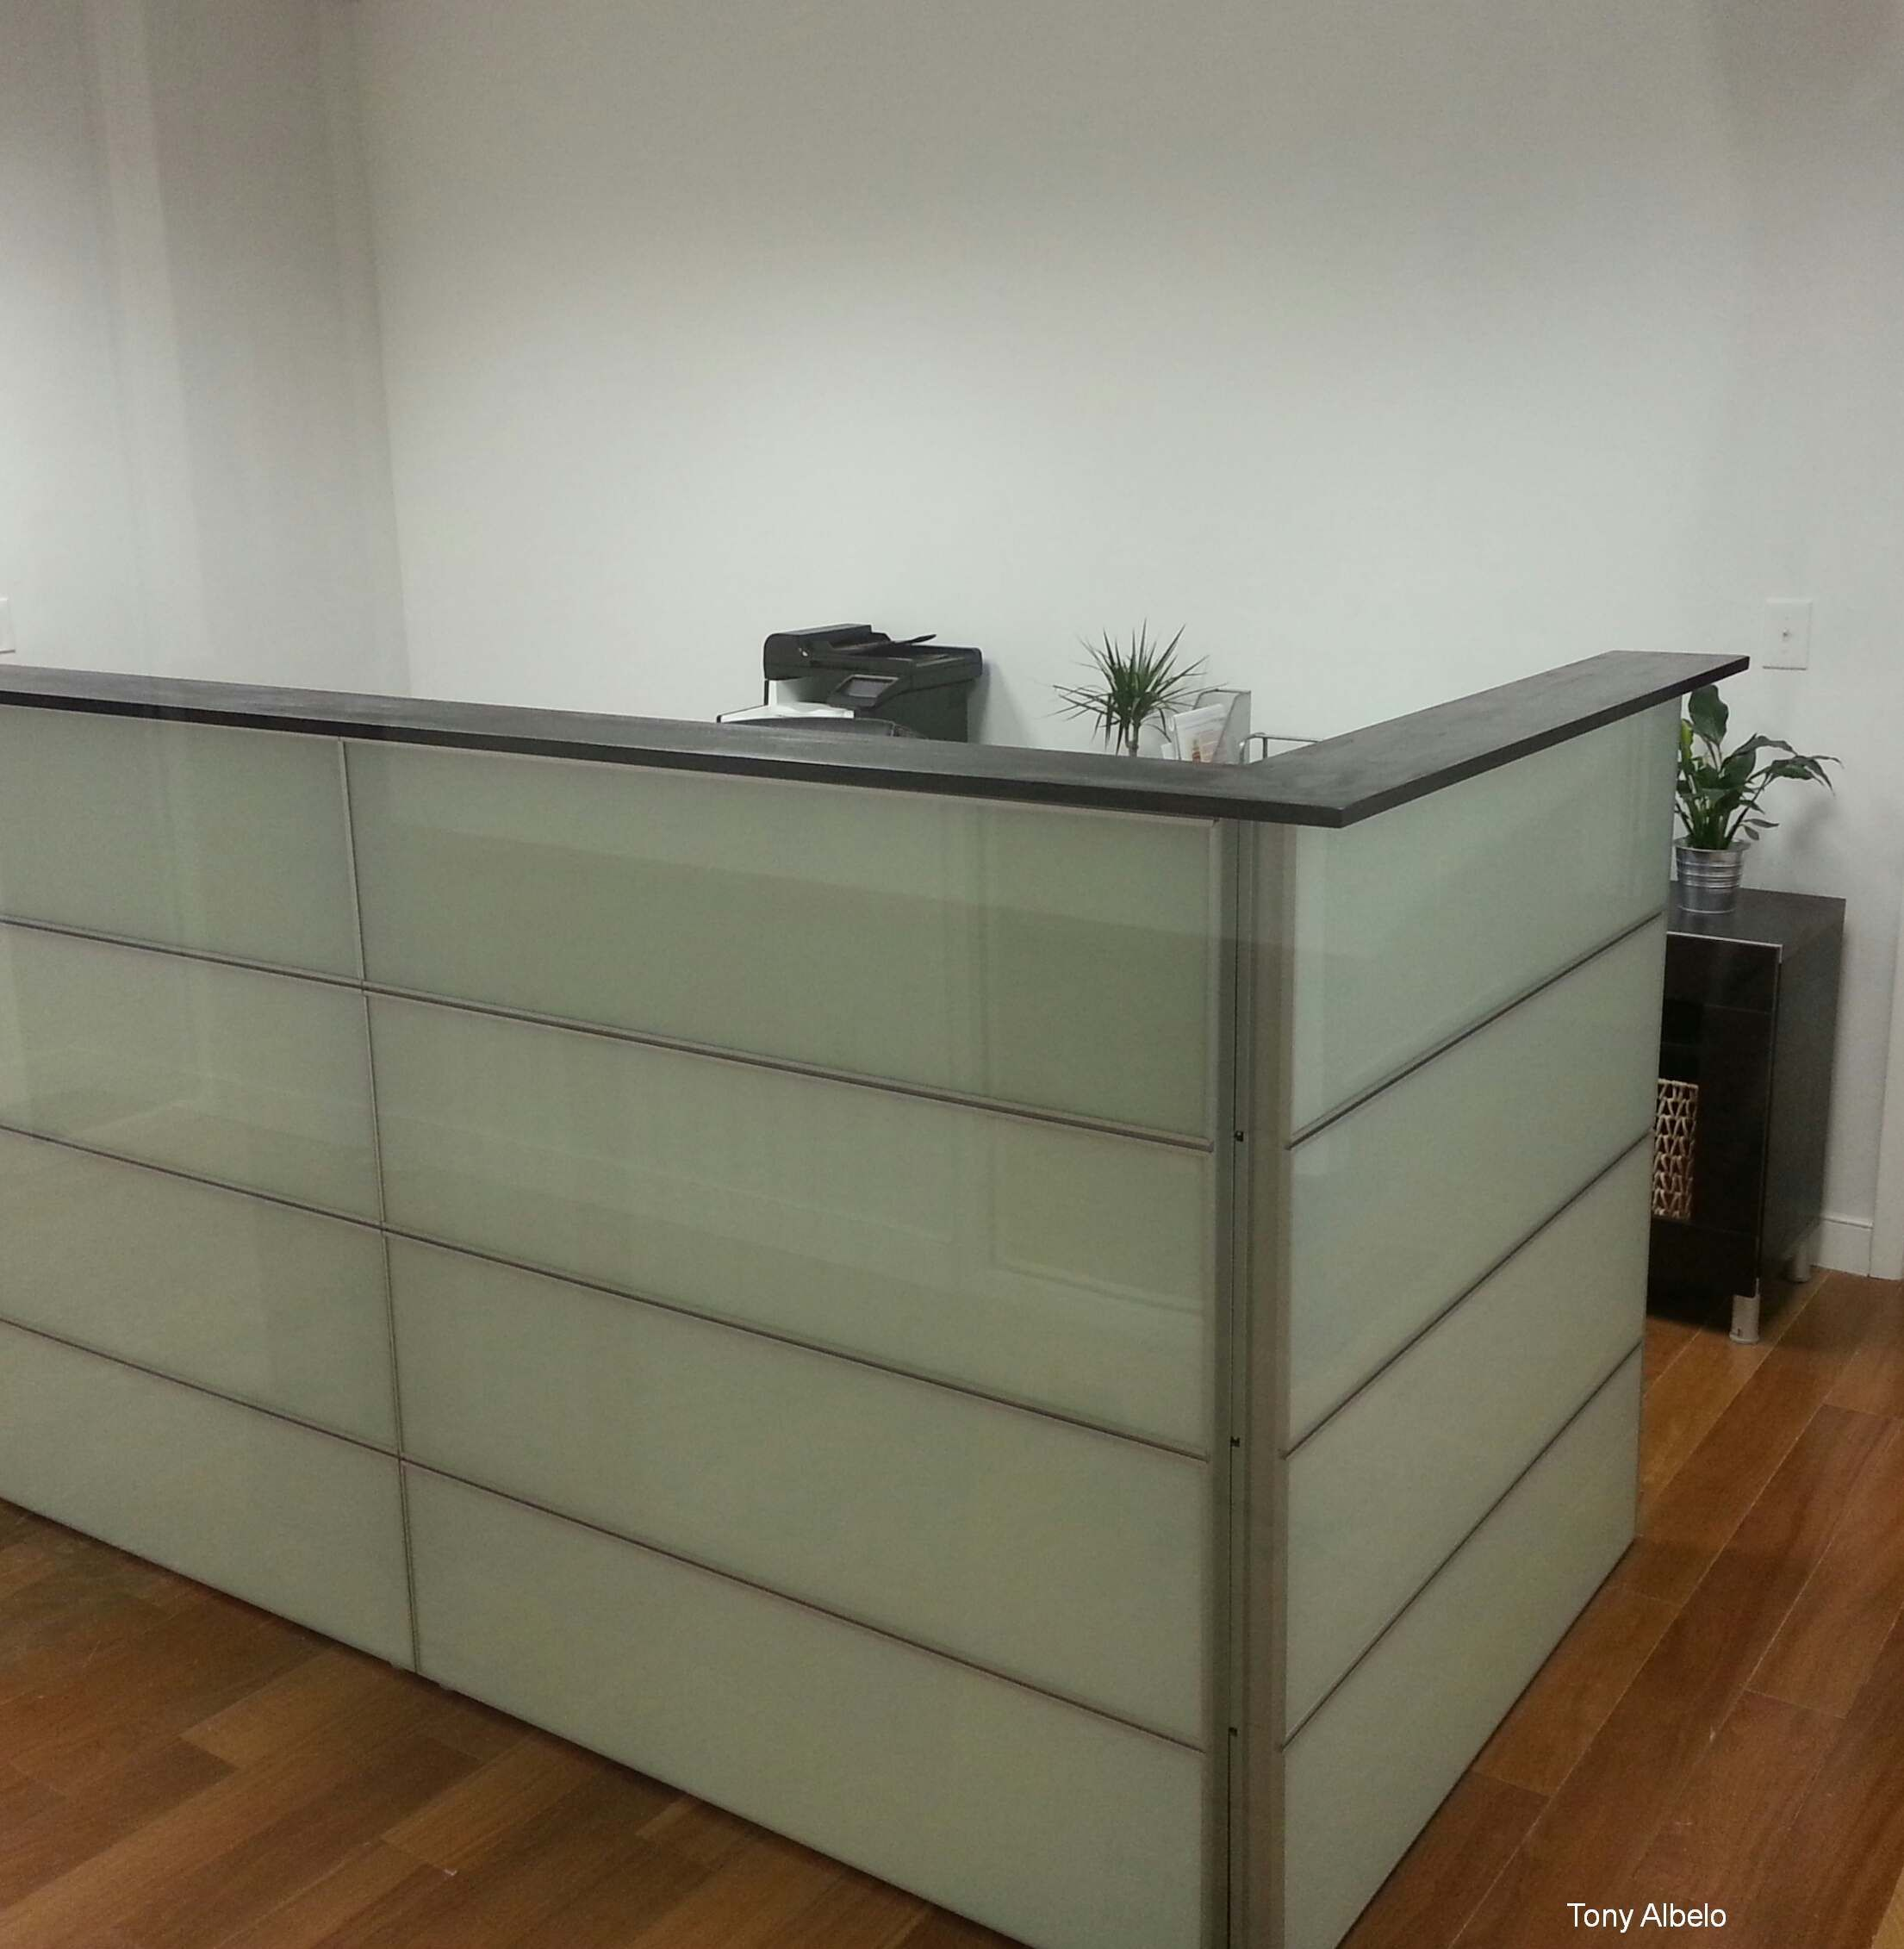 Ikea Hack Converted 12 Framsta Panels Into Reception Counter Wood Top Is 8 Pine Painted To Ma Ikea Reception Desk Office Design Inspo Medical Office Design